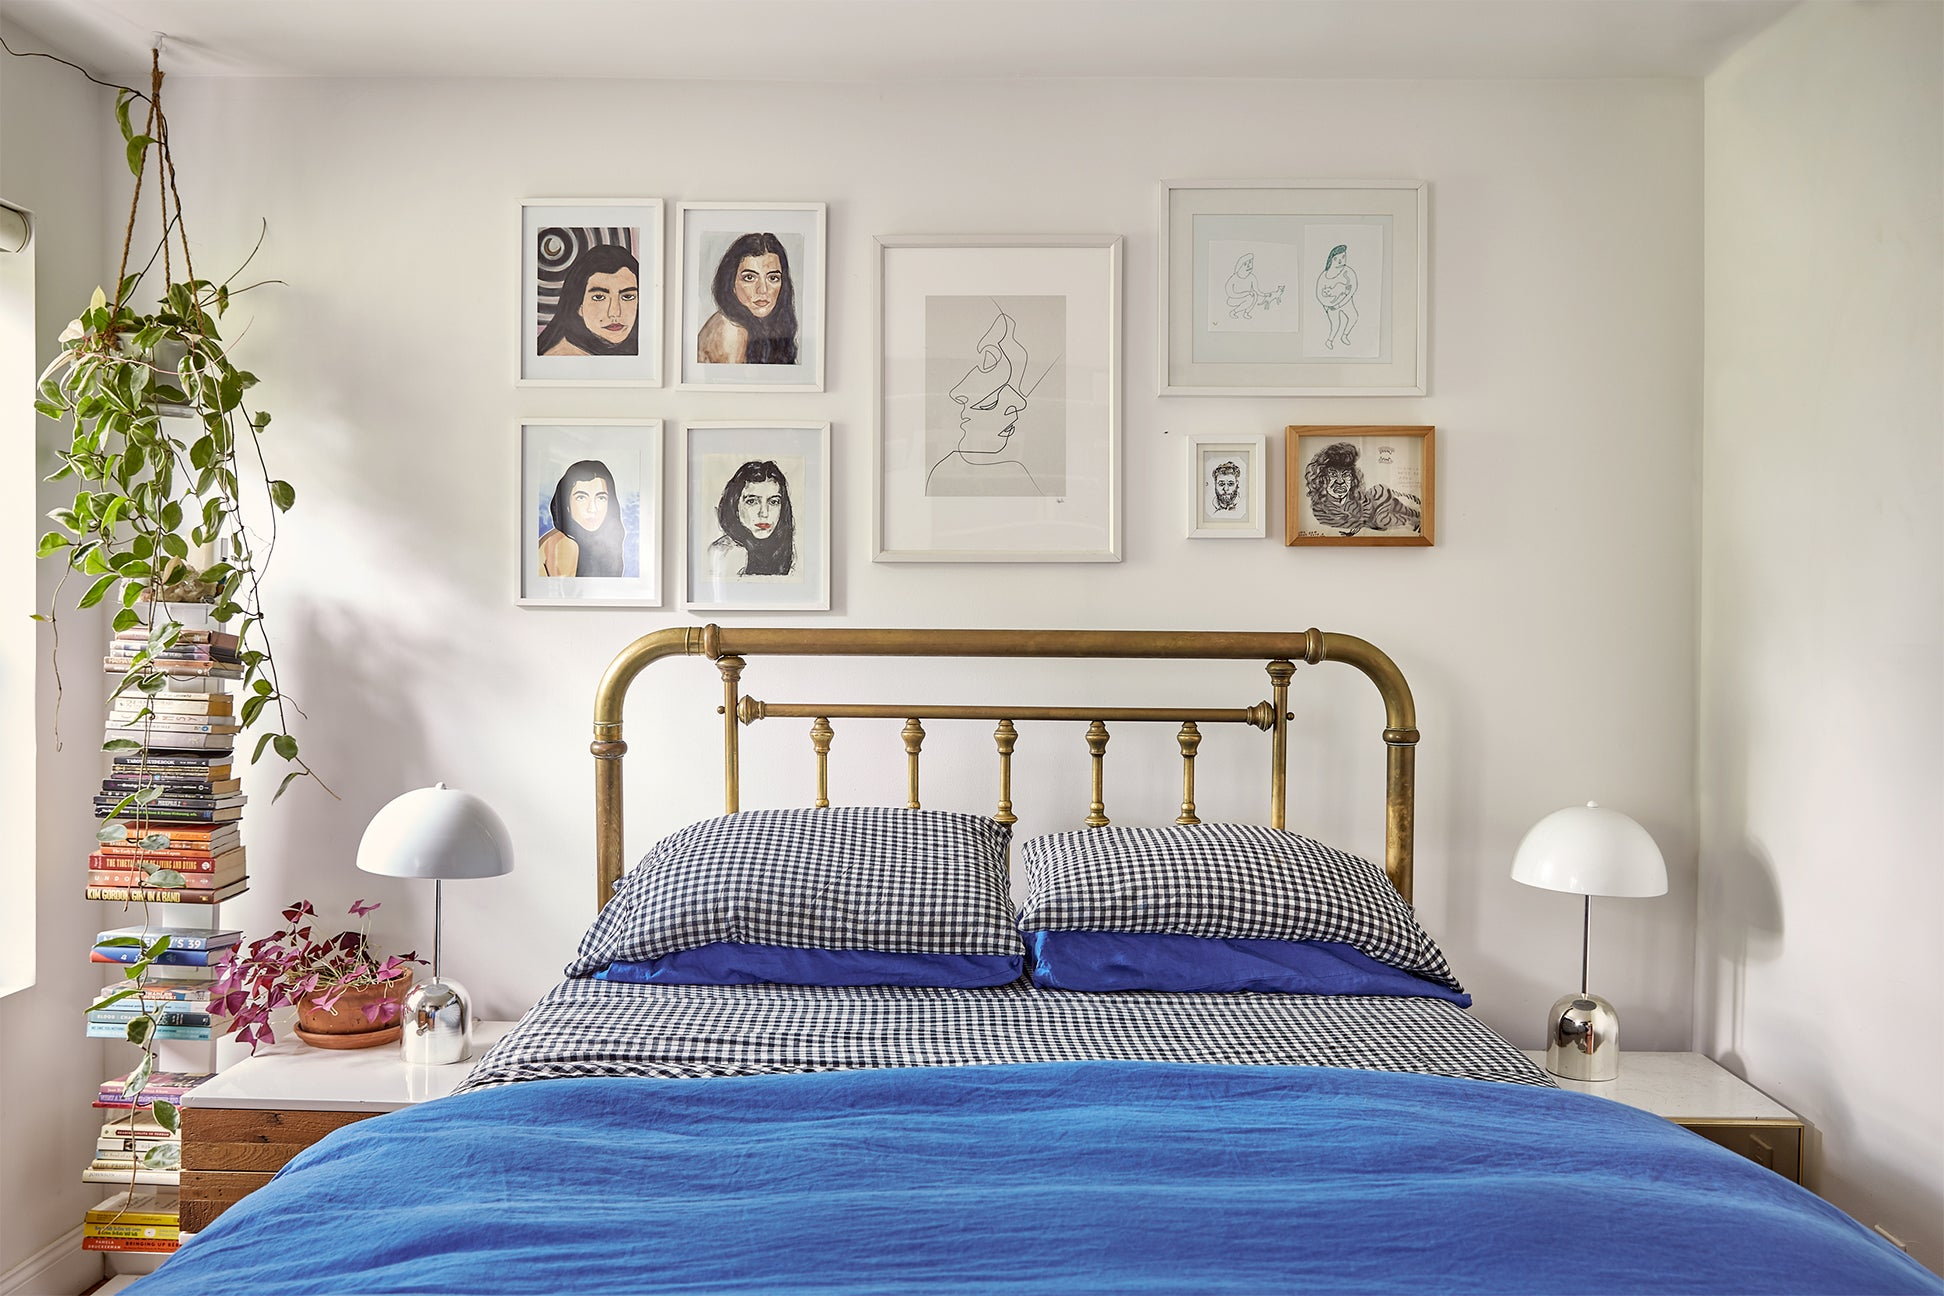 Bedroom with brass bed and blue quilt